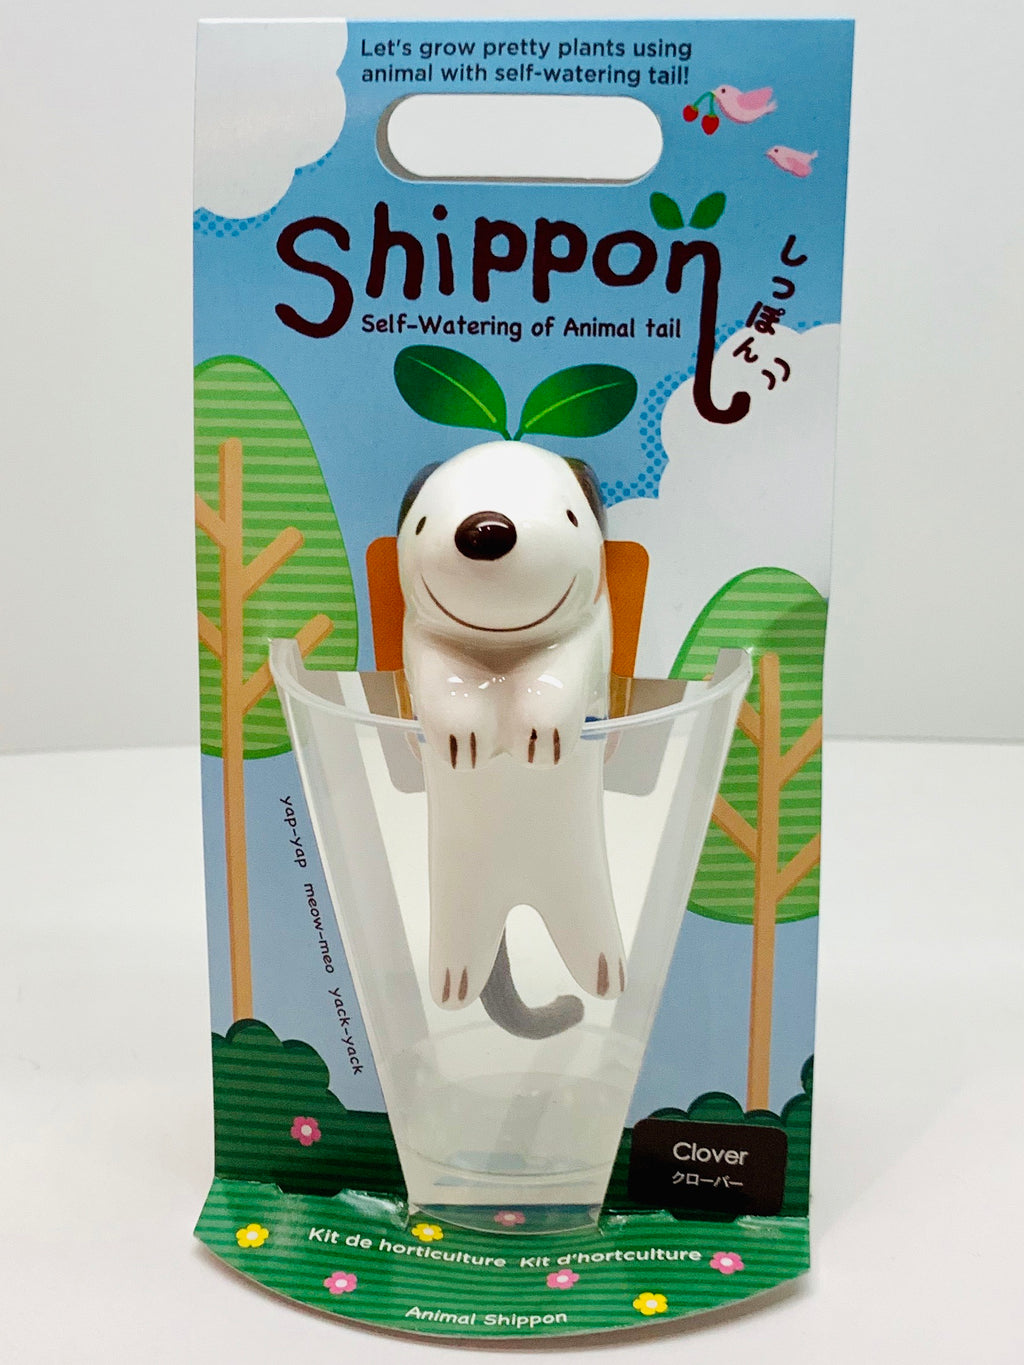 Shippon Self Watering of Animal Tail